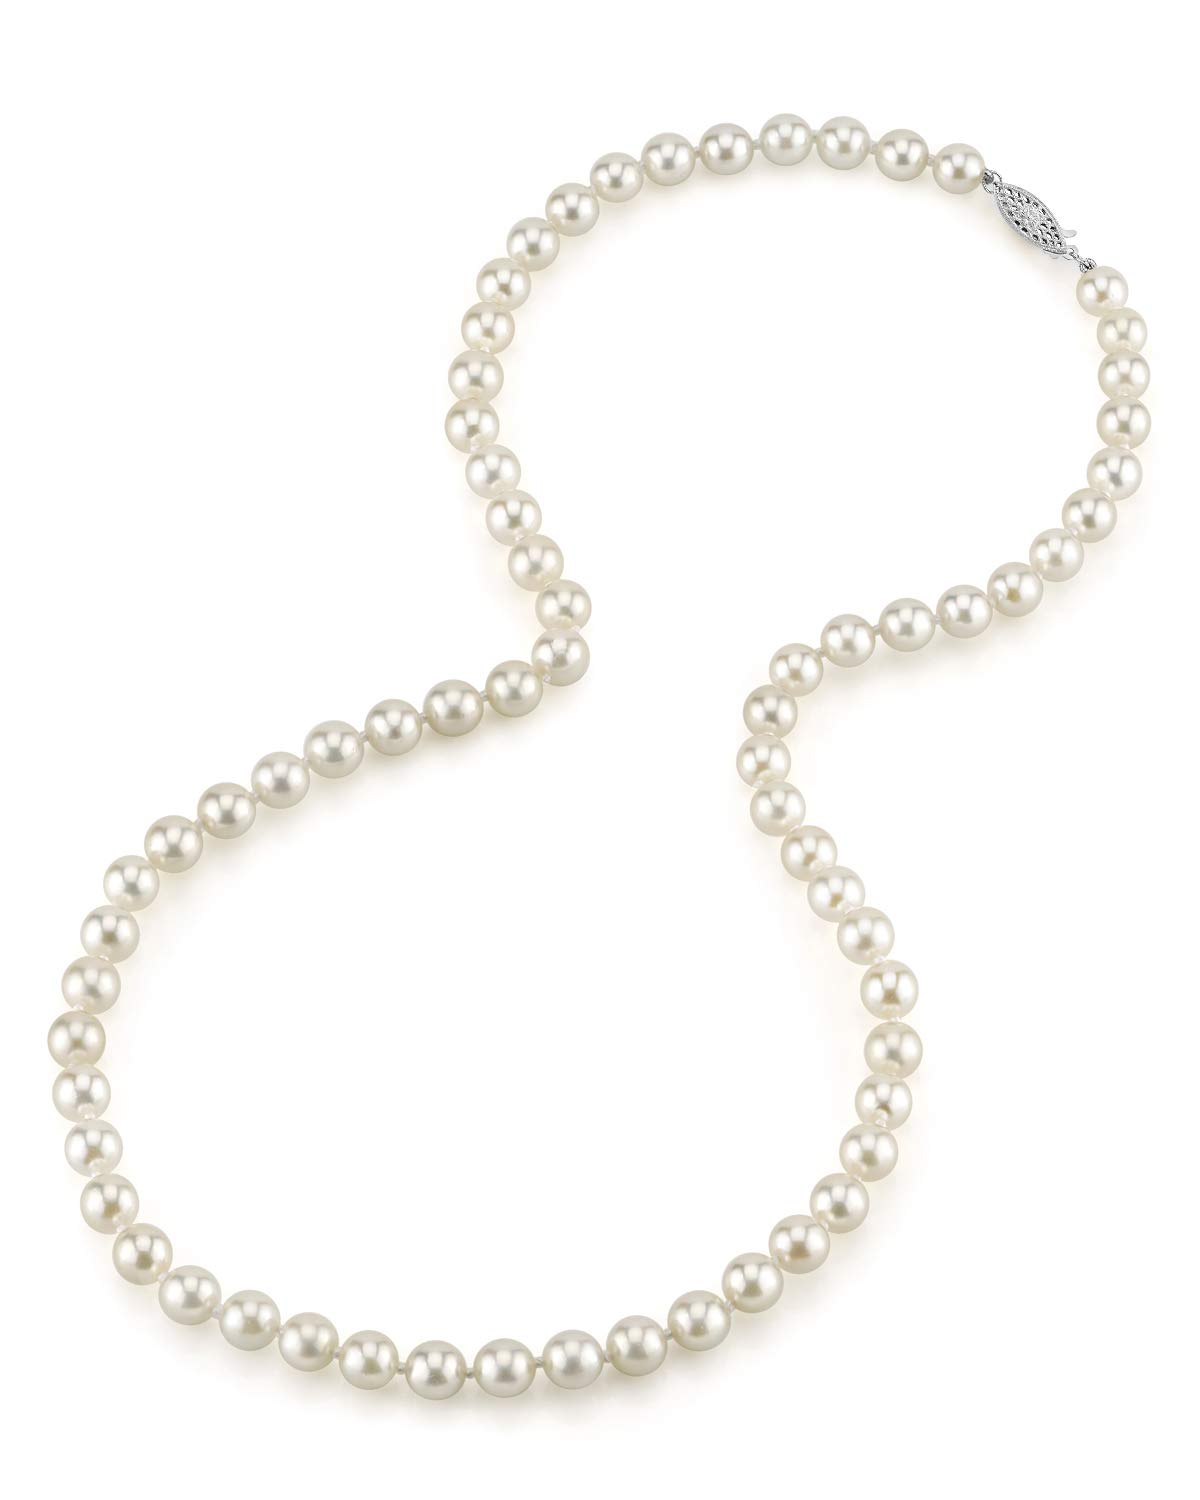 THE PEARL SOURCE 14K Gold 6.0-6.5mm AAA Quality Round Genuine White Japanese Akoya Saltwater Cultured Pearl Necklace in 18'' Princess Length for Women by The Pearl Source